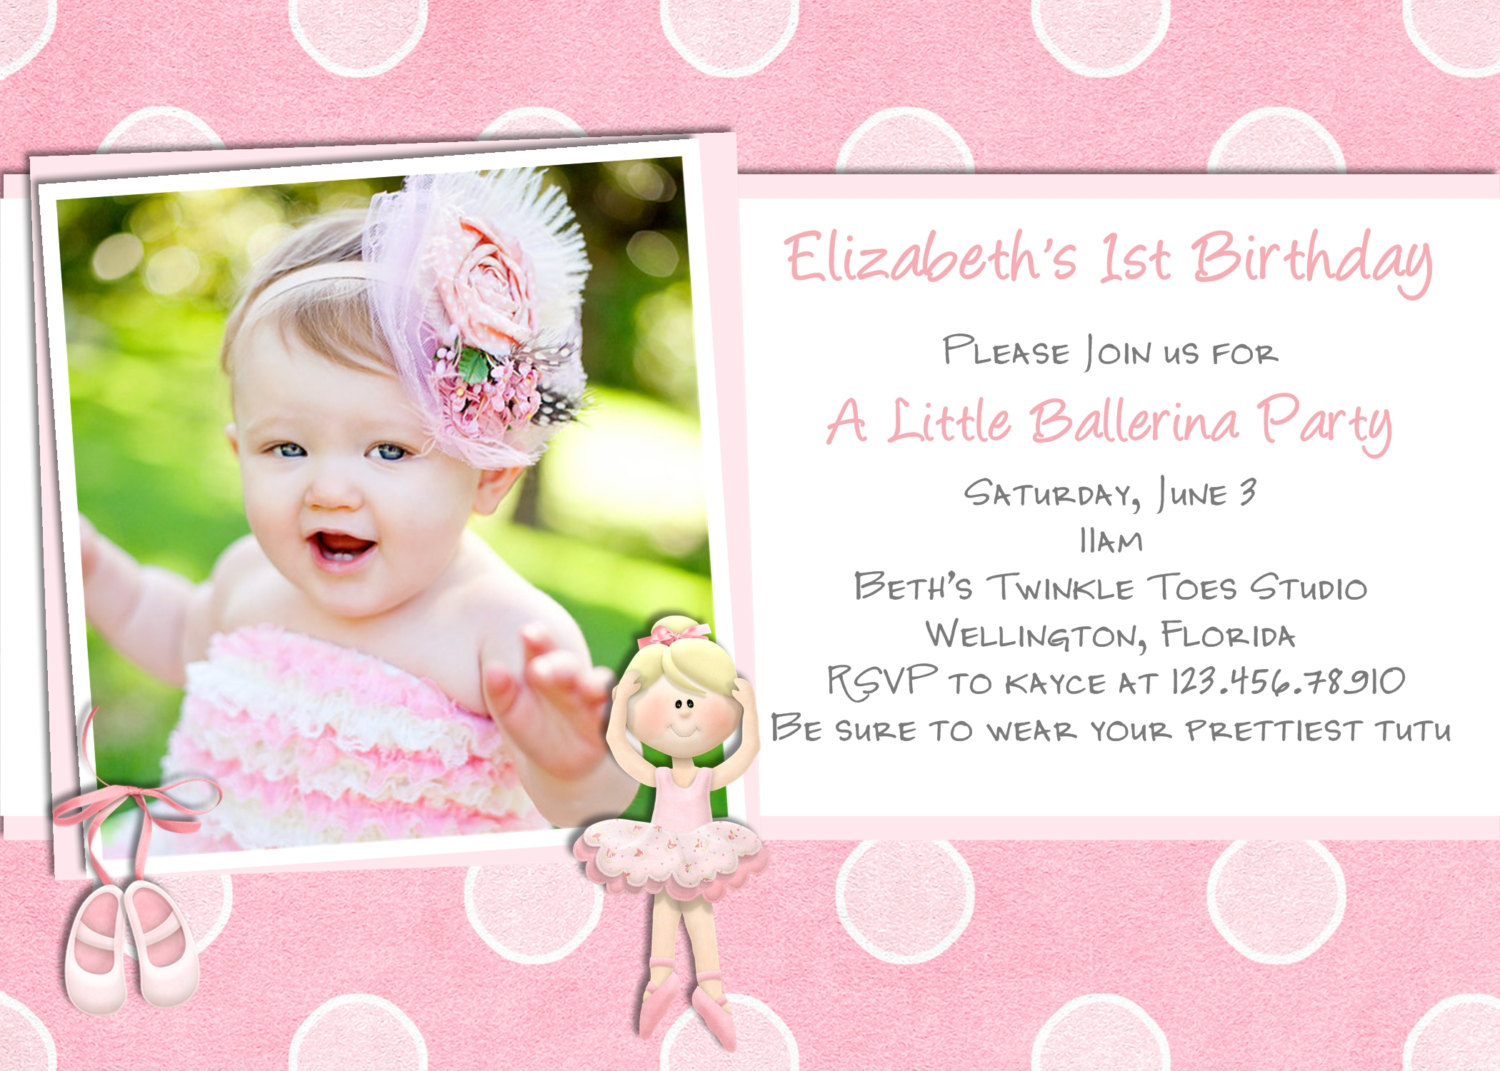 design invitation card for birthday ; amazing-designing-birthday-invitation-cards-design-white-concrete-display-template-pink-concept-reap-photo